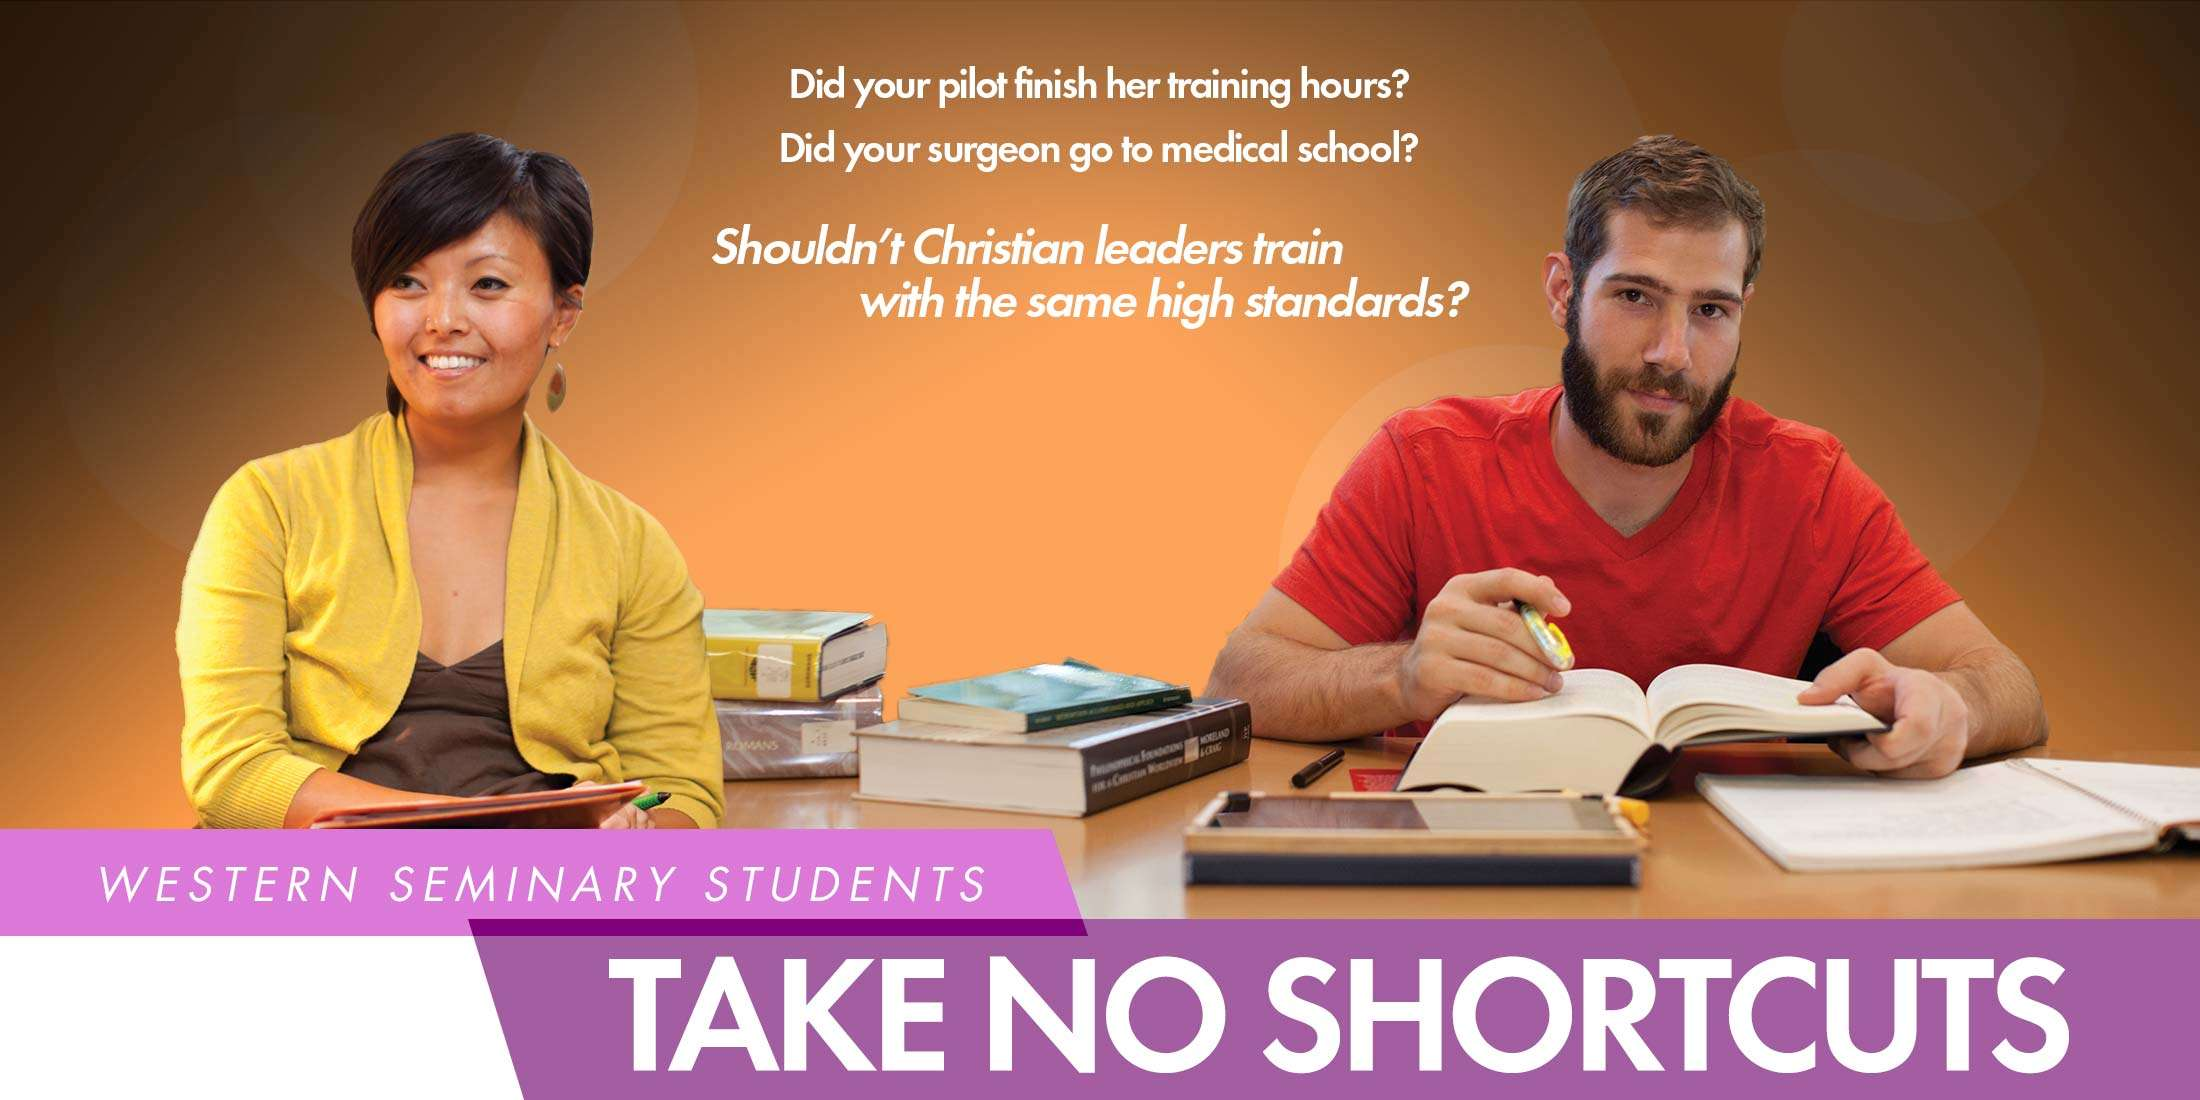 Western Seminary Students Take No Shortcuts